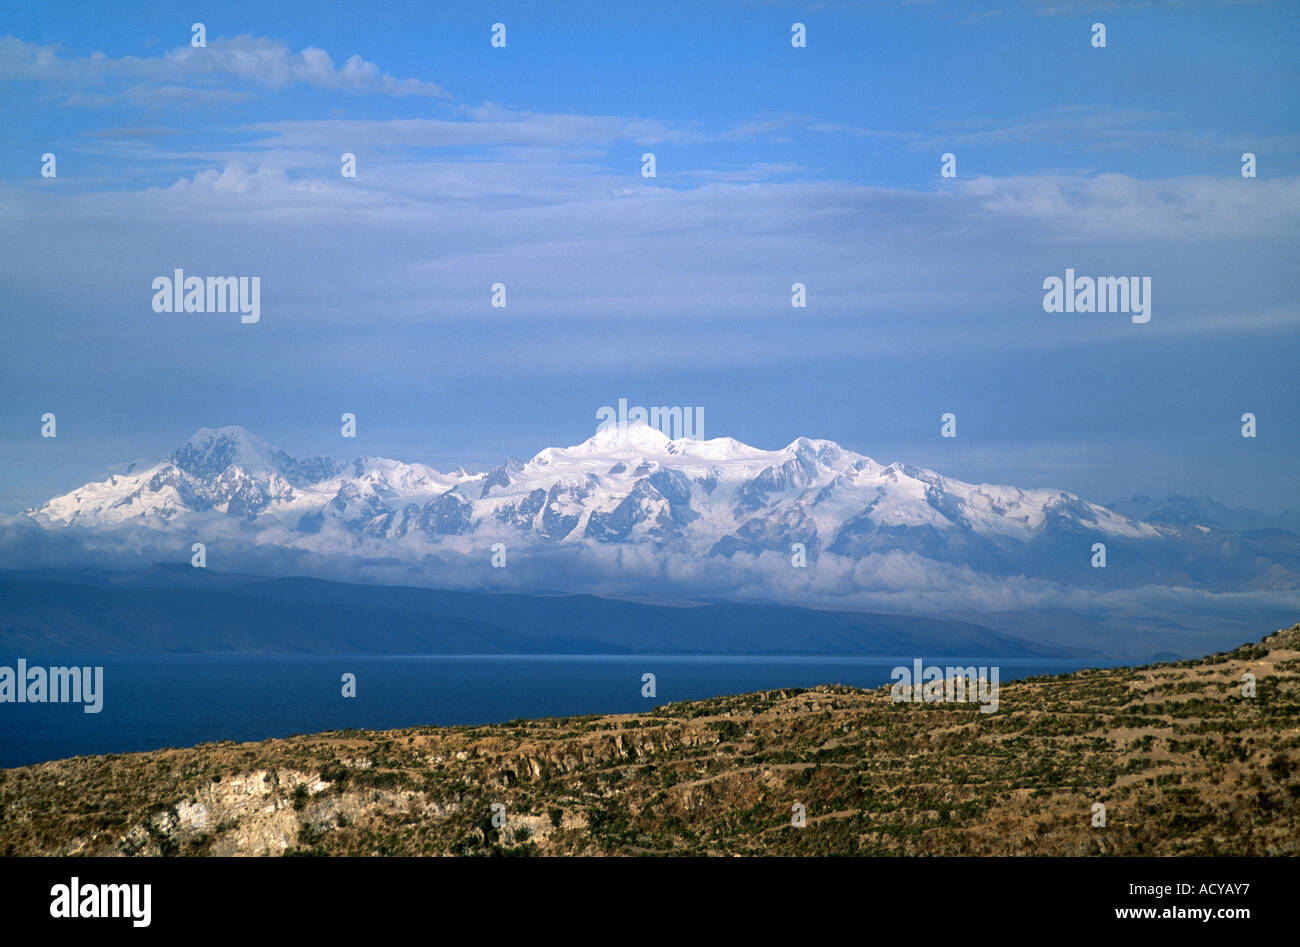 ISLE DEL SOL Island of the Sun with the NEVADO ILLAMPU 7010 M visible beyond the waters of LAKE TITICACA - Stock Image